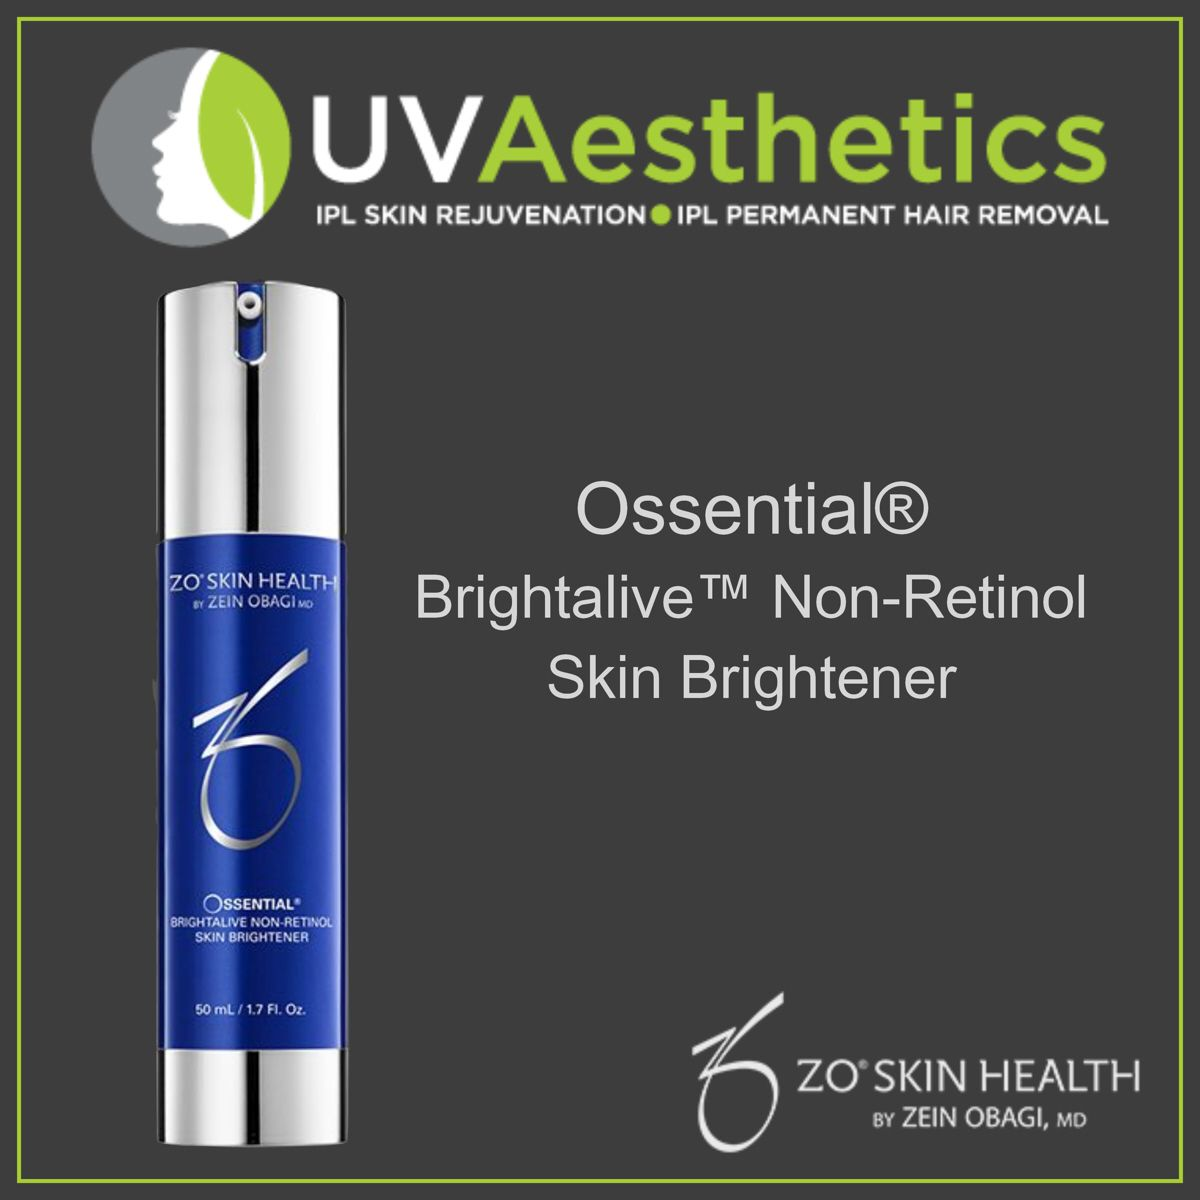 Zo Skin Health Products NonRetinol Skin Brightener